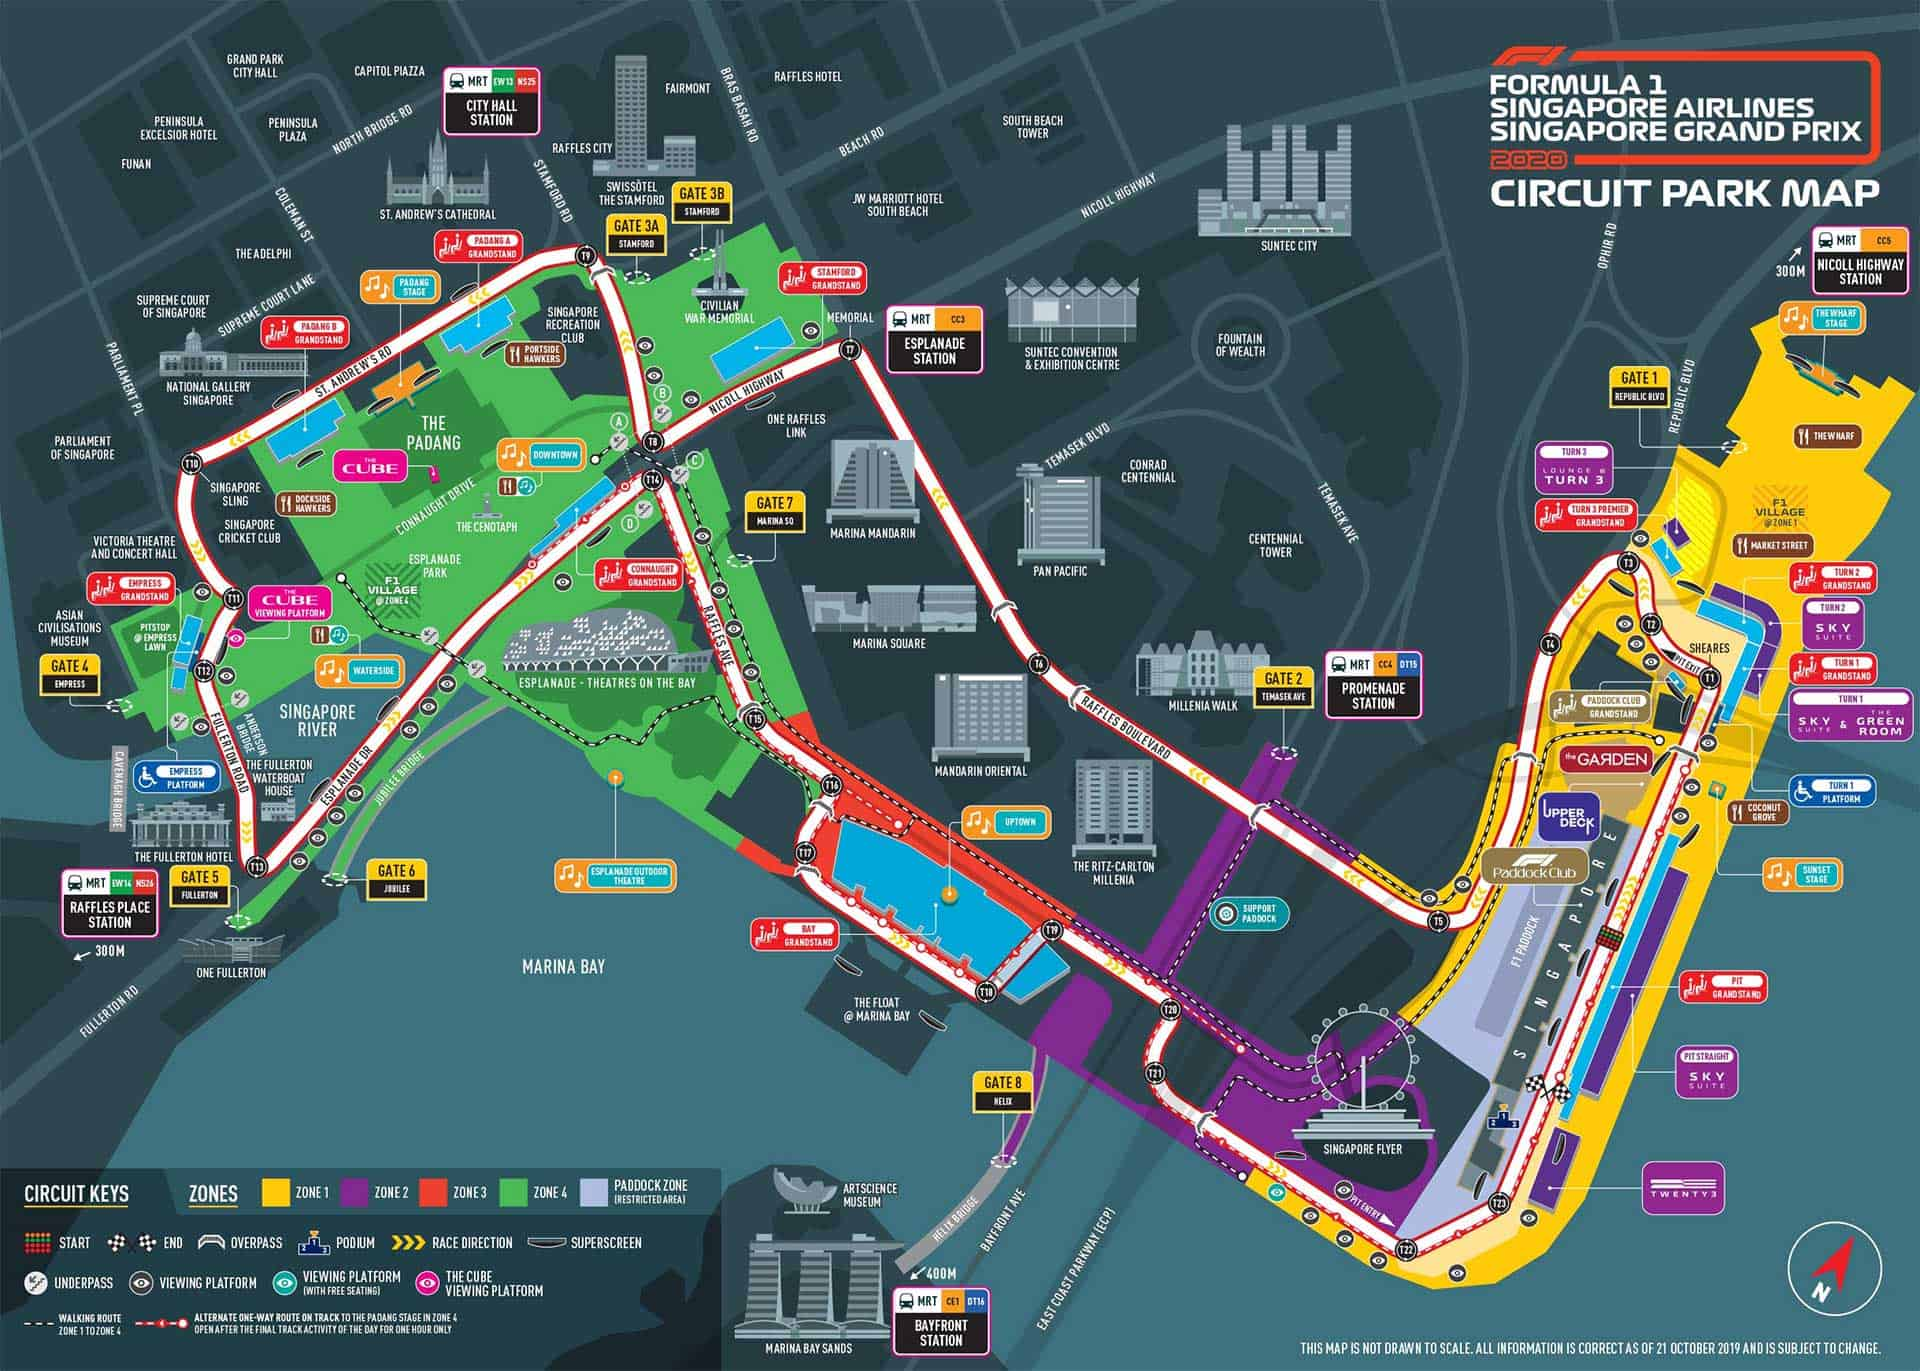 Singapore Grand Prix 2020 Circuit Map